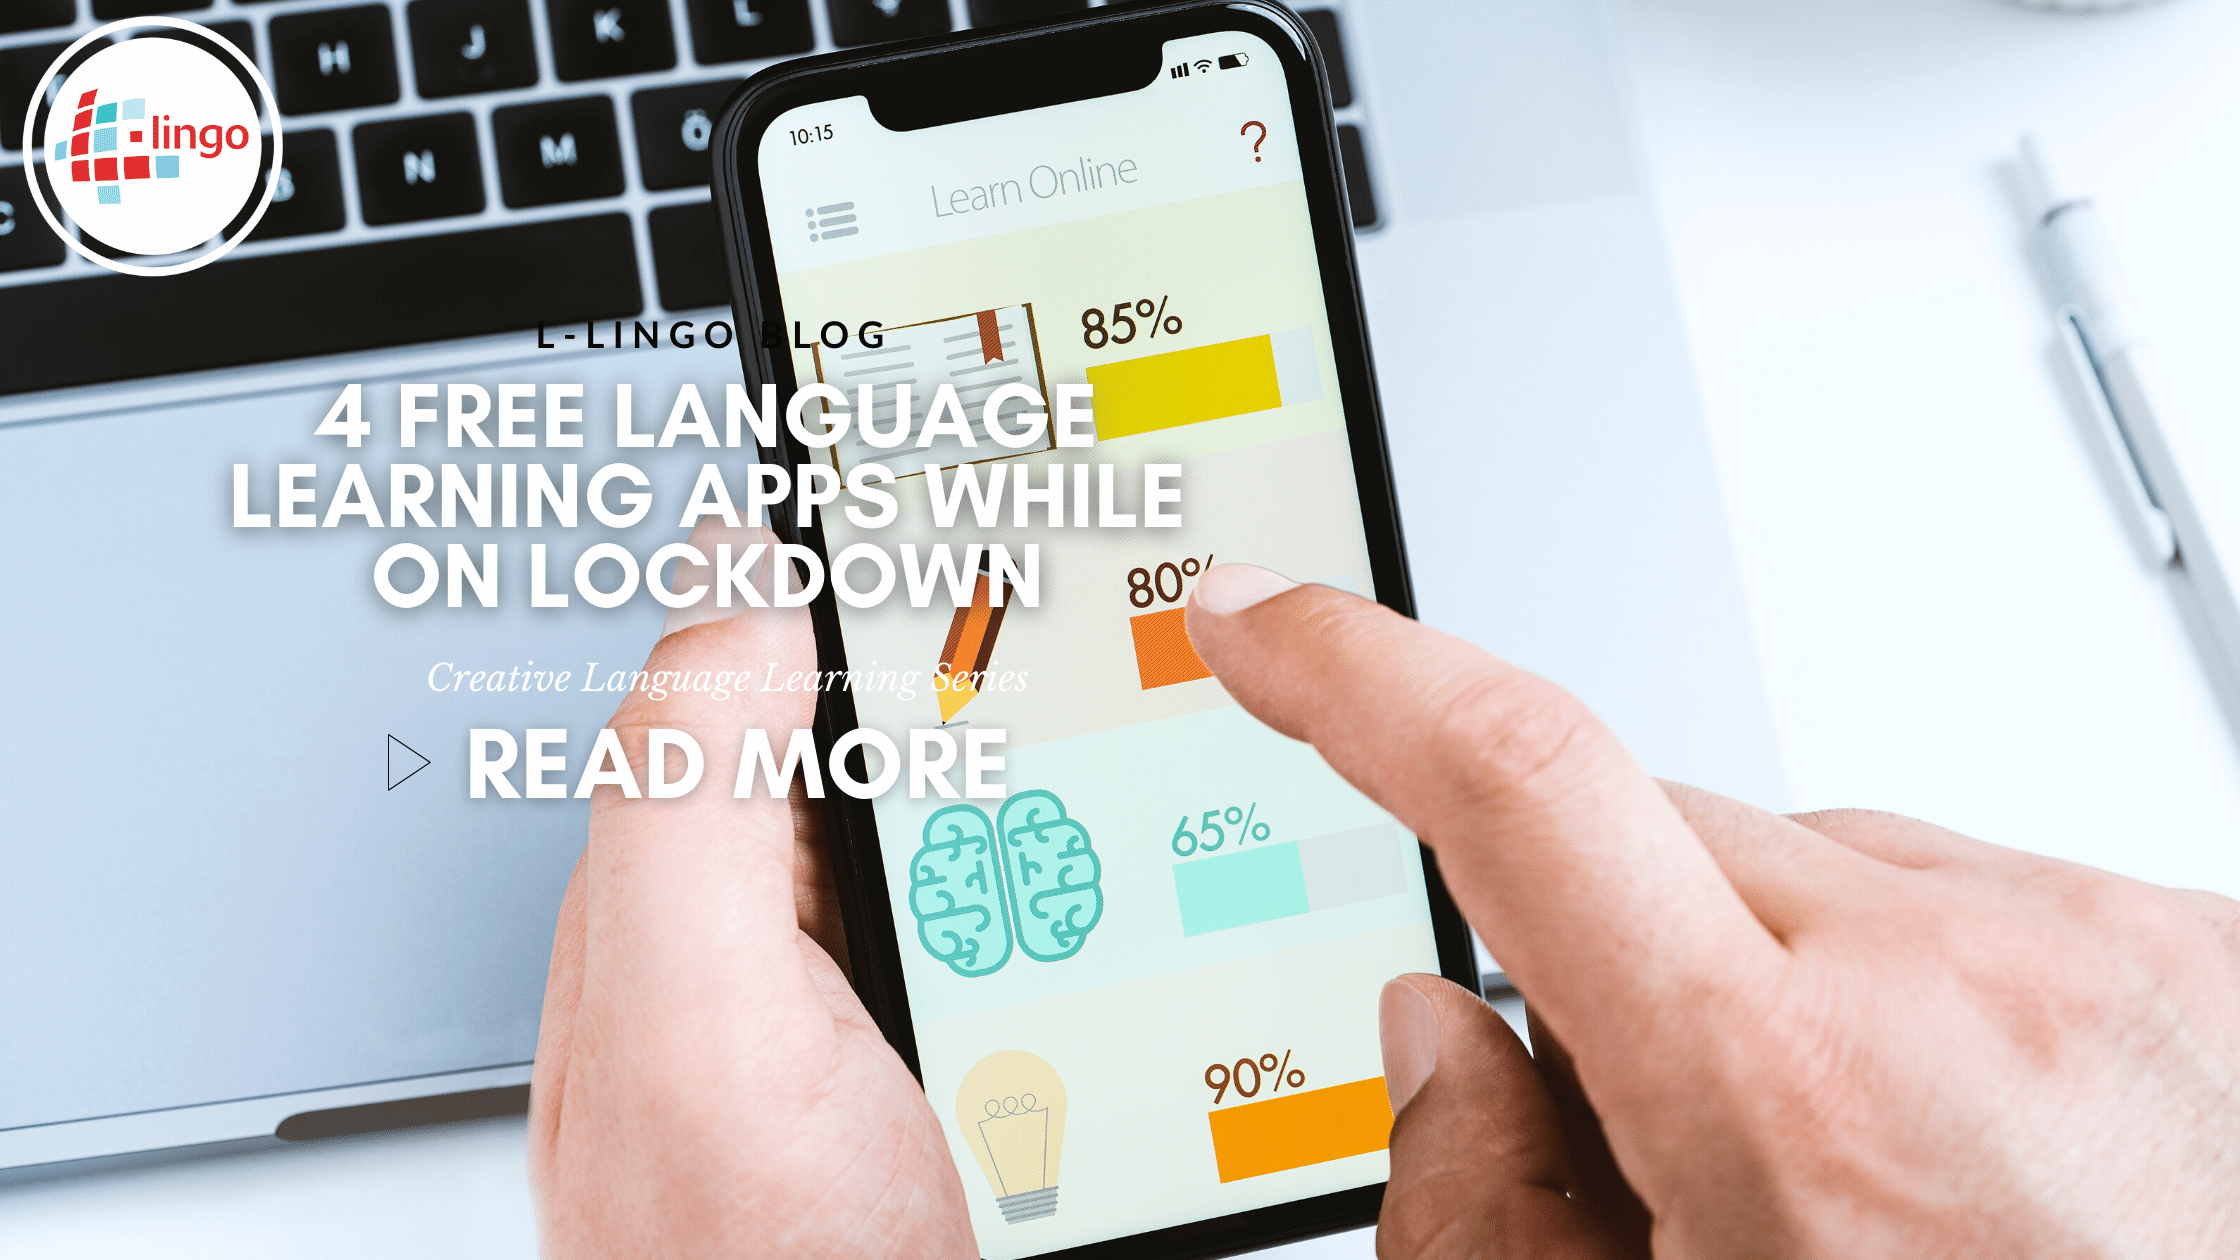 4 Free Language Learning Apps To Use In Quarantine L-Lingo Blog